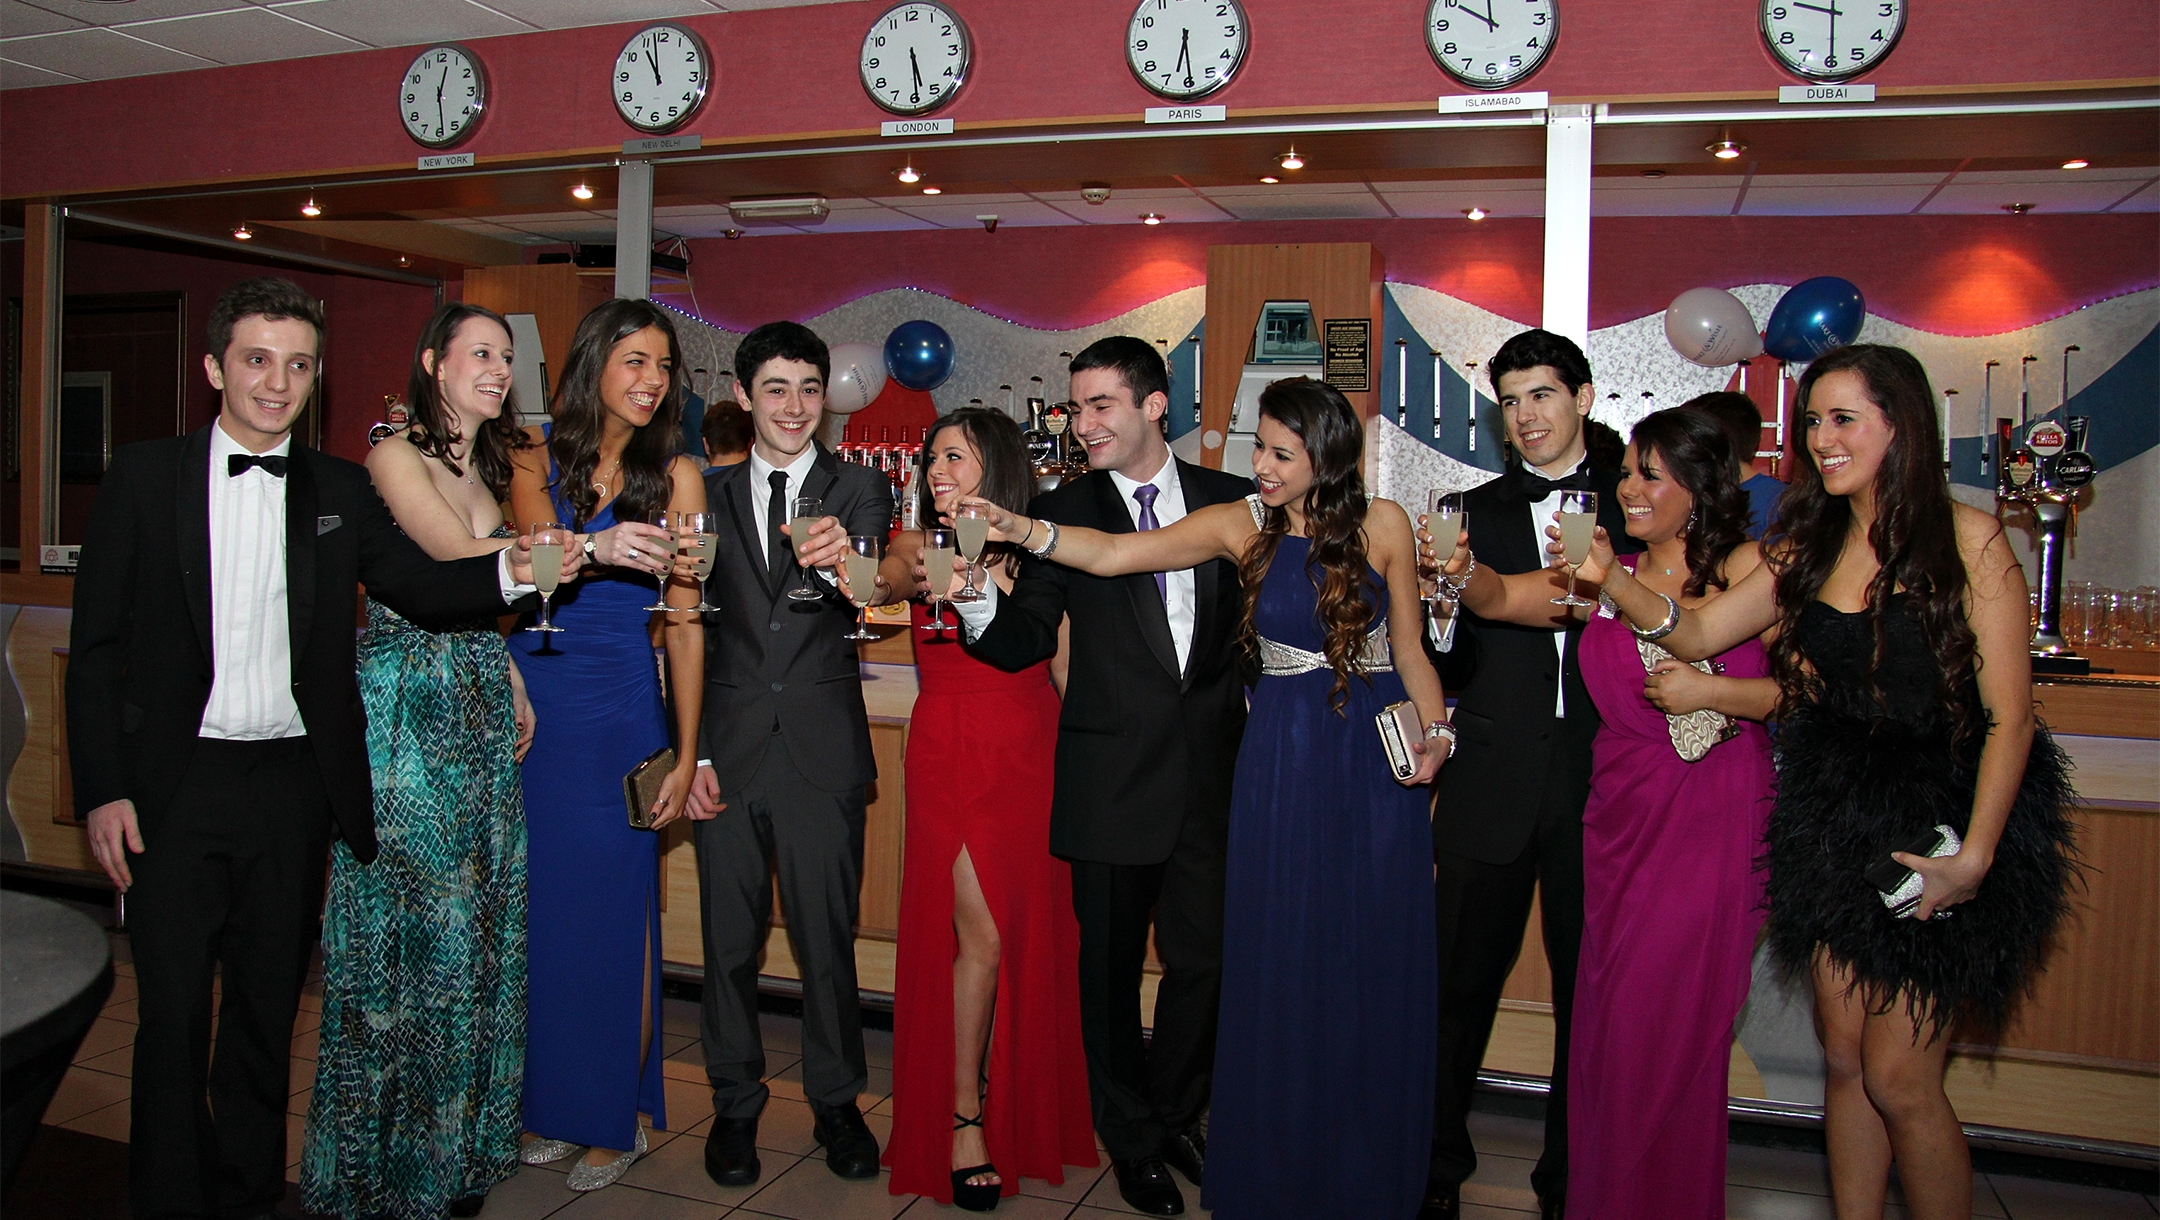 Jewish students toasting at the JSOC Annual Ball in Birmingham, the United Kingsdom, on March 17, 2013. (Kyle Sayers)